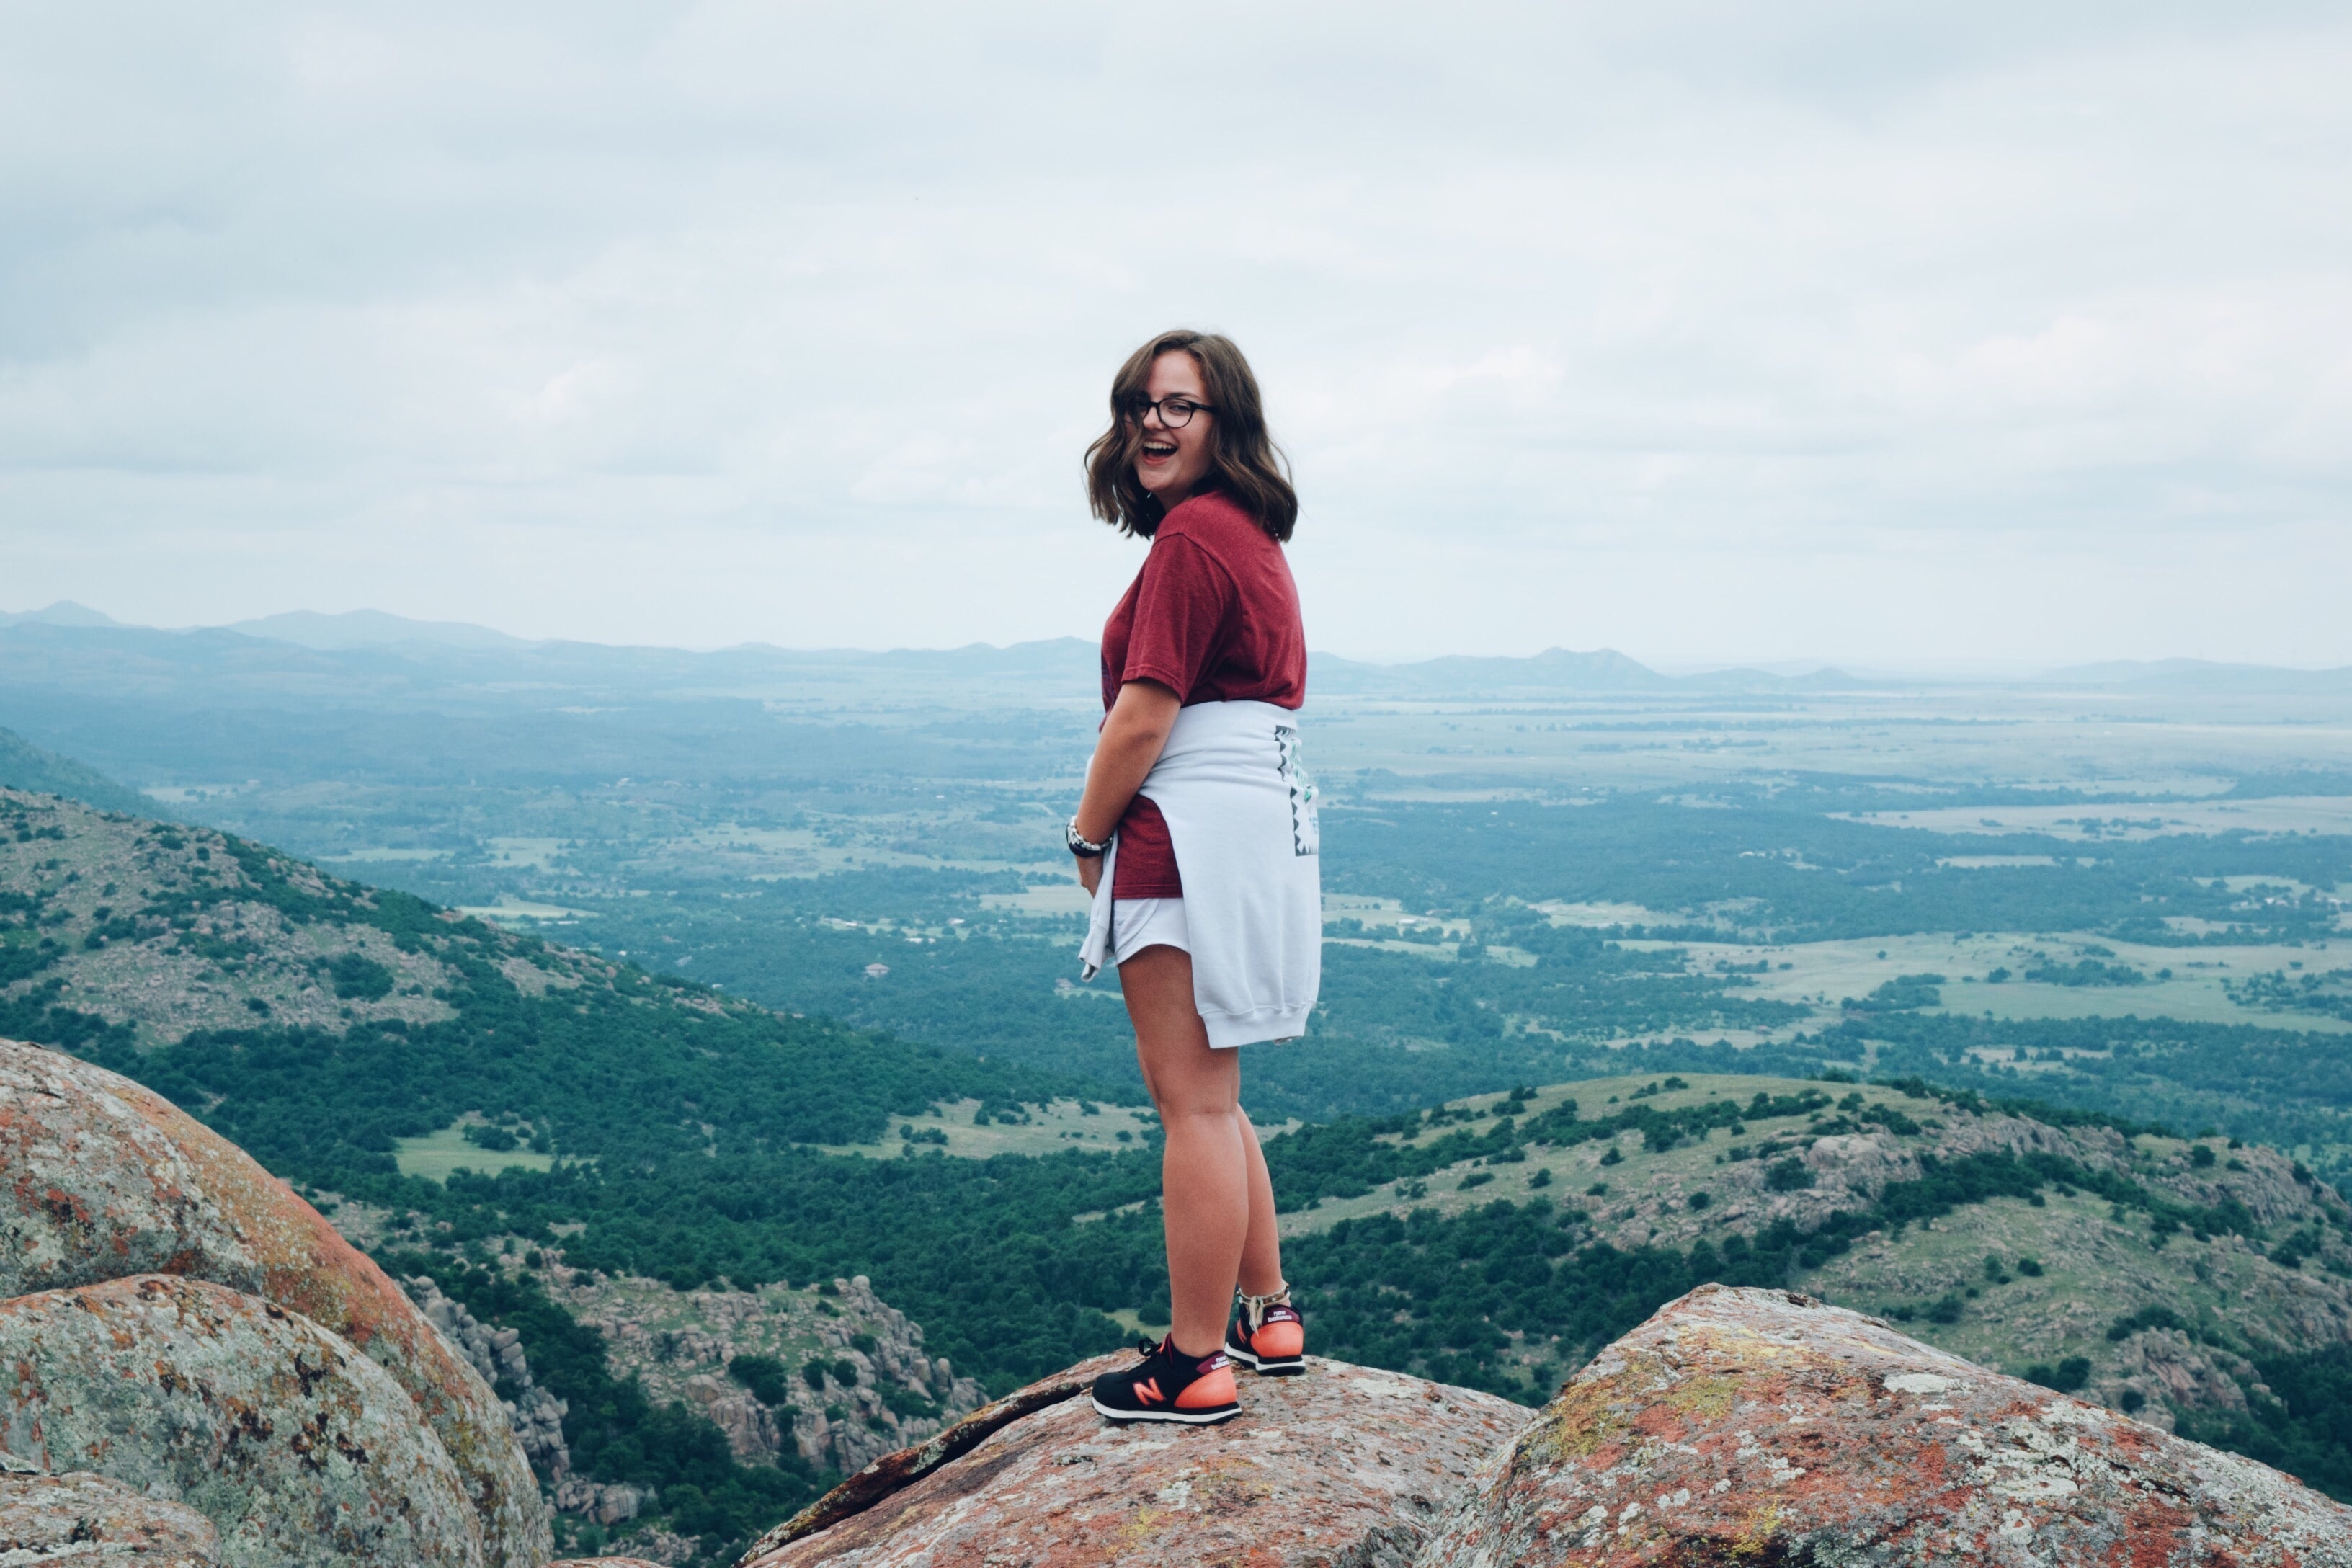 woman in red t-shirt standing on rock during daytime